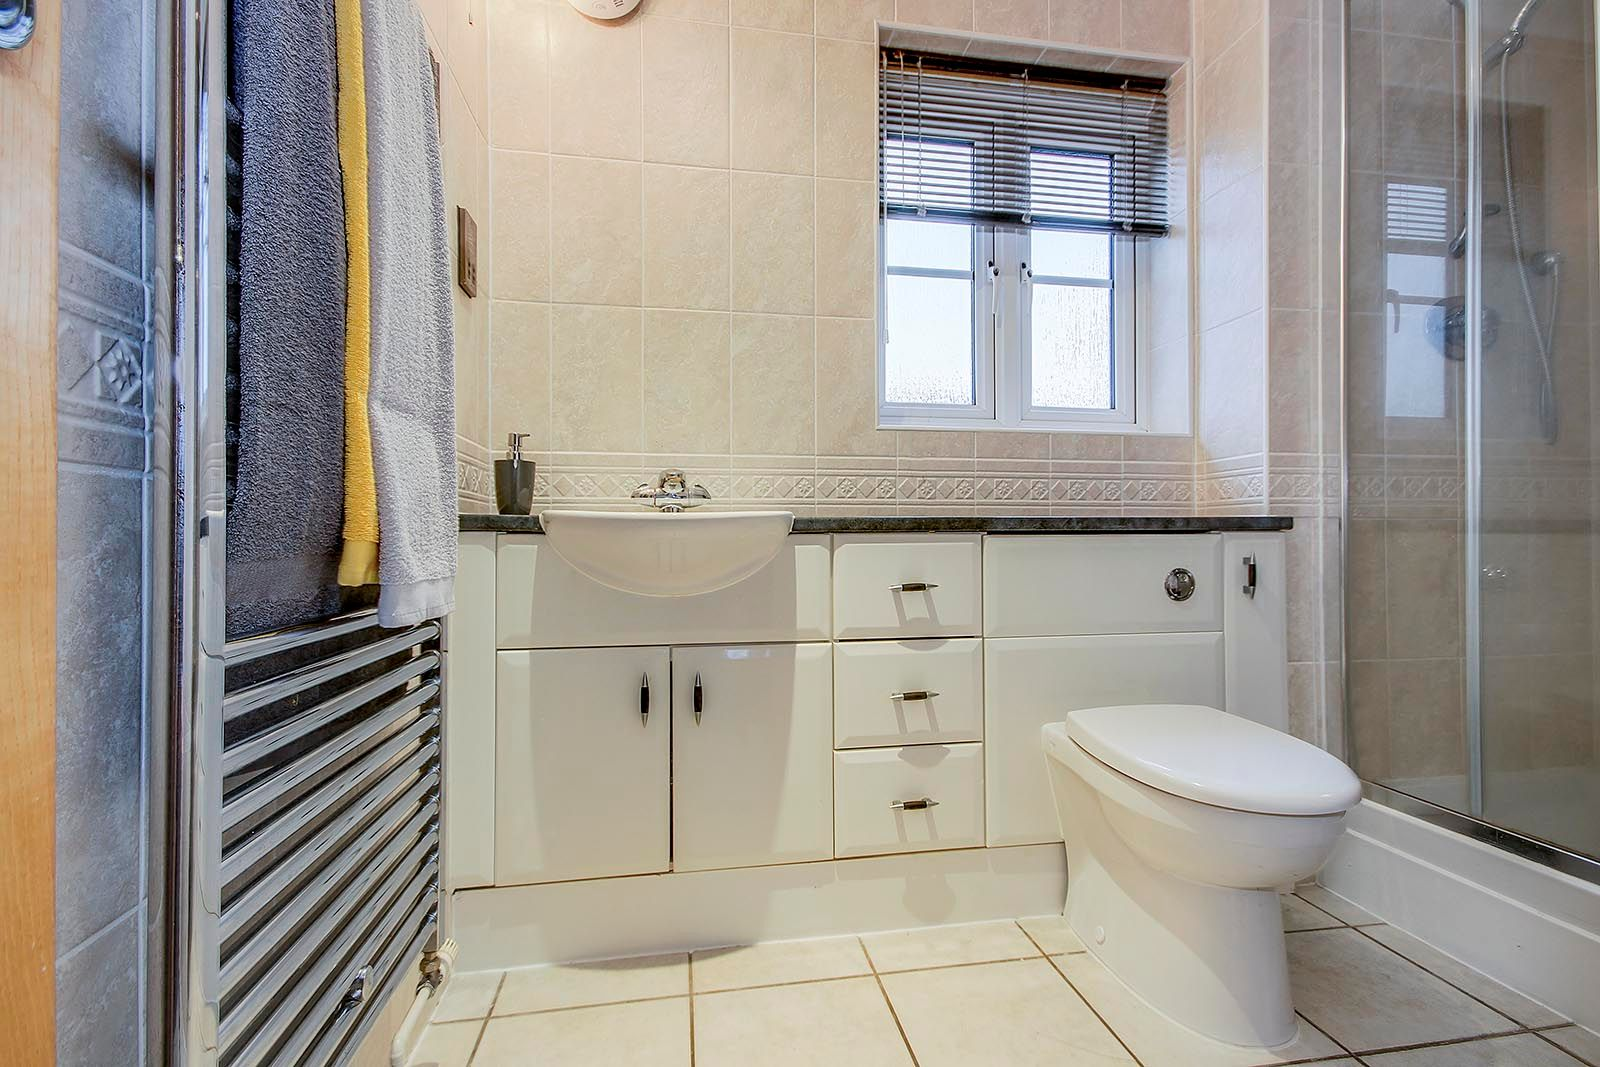 4 bed house for sale in Lucksfield Way  - Property Image 7